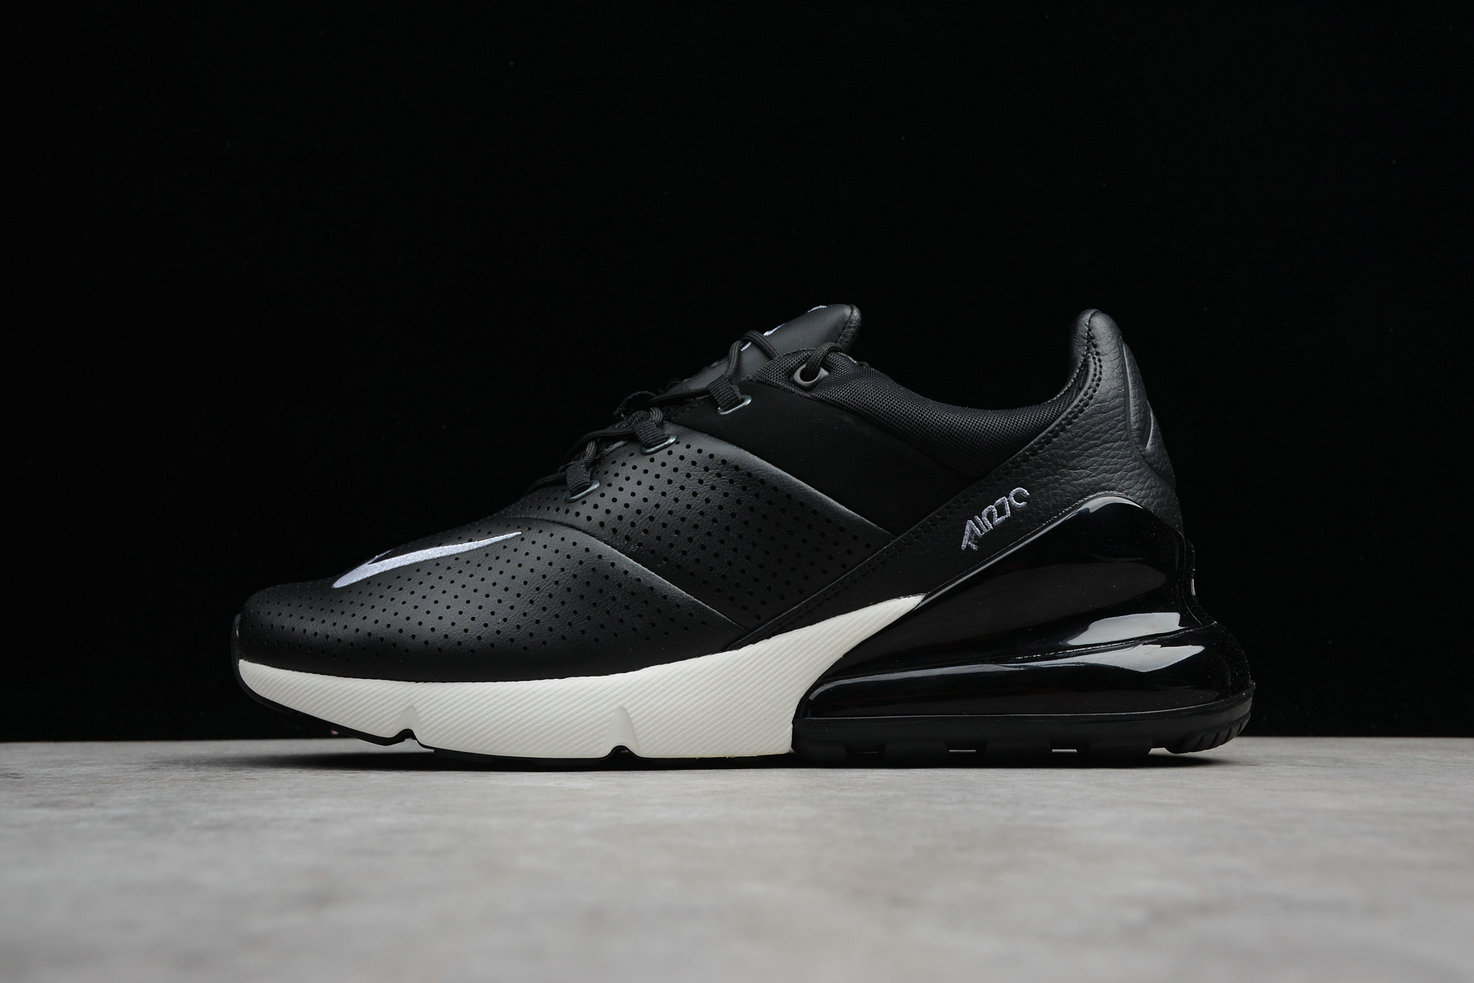 Cheap Wholesale Nike Air Max 270 Premium AO8283-001 Black Ligt Carbon Sail Noir Voile Carbone Clair- www.wholesaleflyknit.com